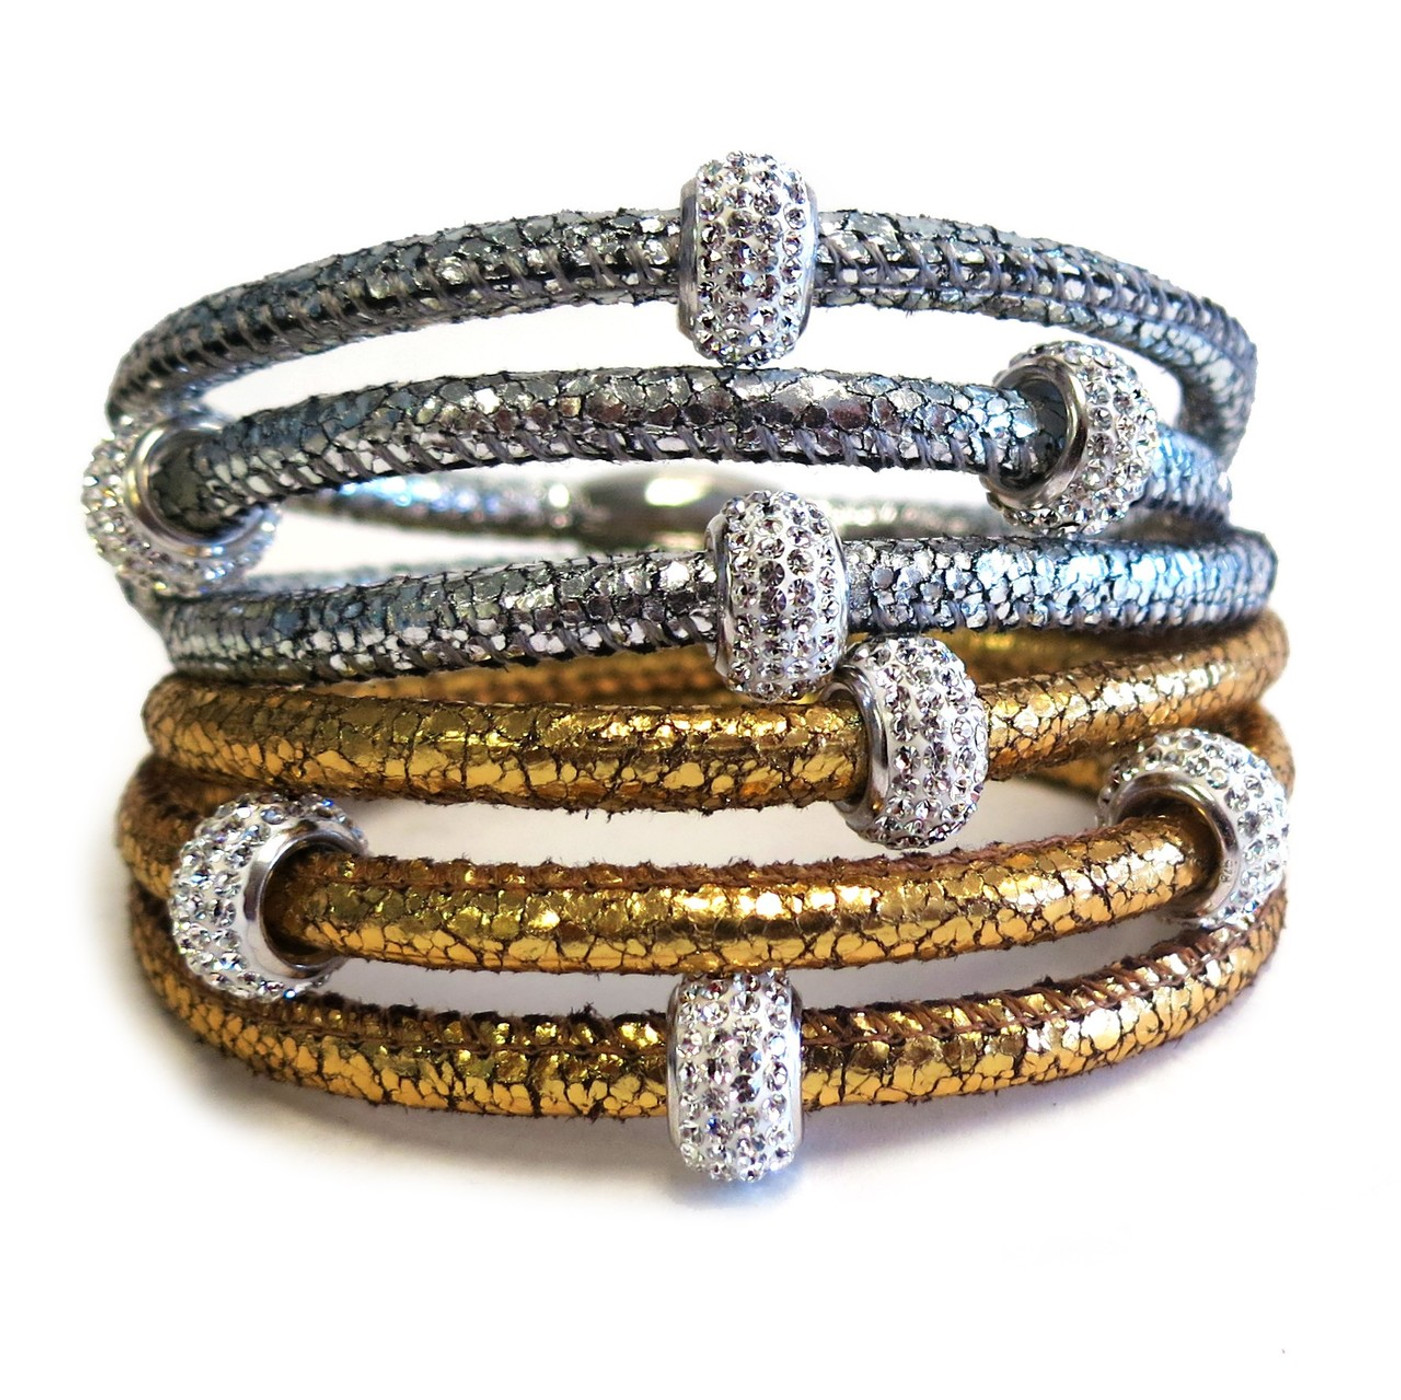 Rare and expensive to make in quality, Nappa Leather Triple Wrap Bracelet  4 Sterling Silver Sparkling Crystals  Easy to use Magnetic Clasp  Size: One Size